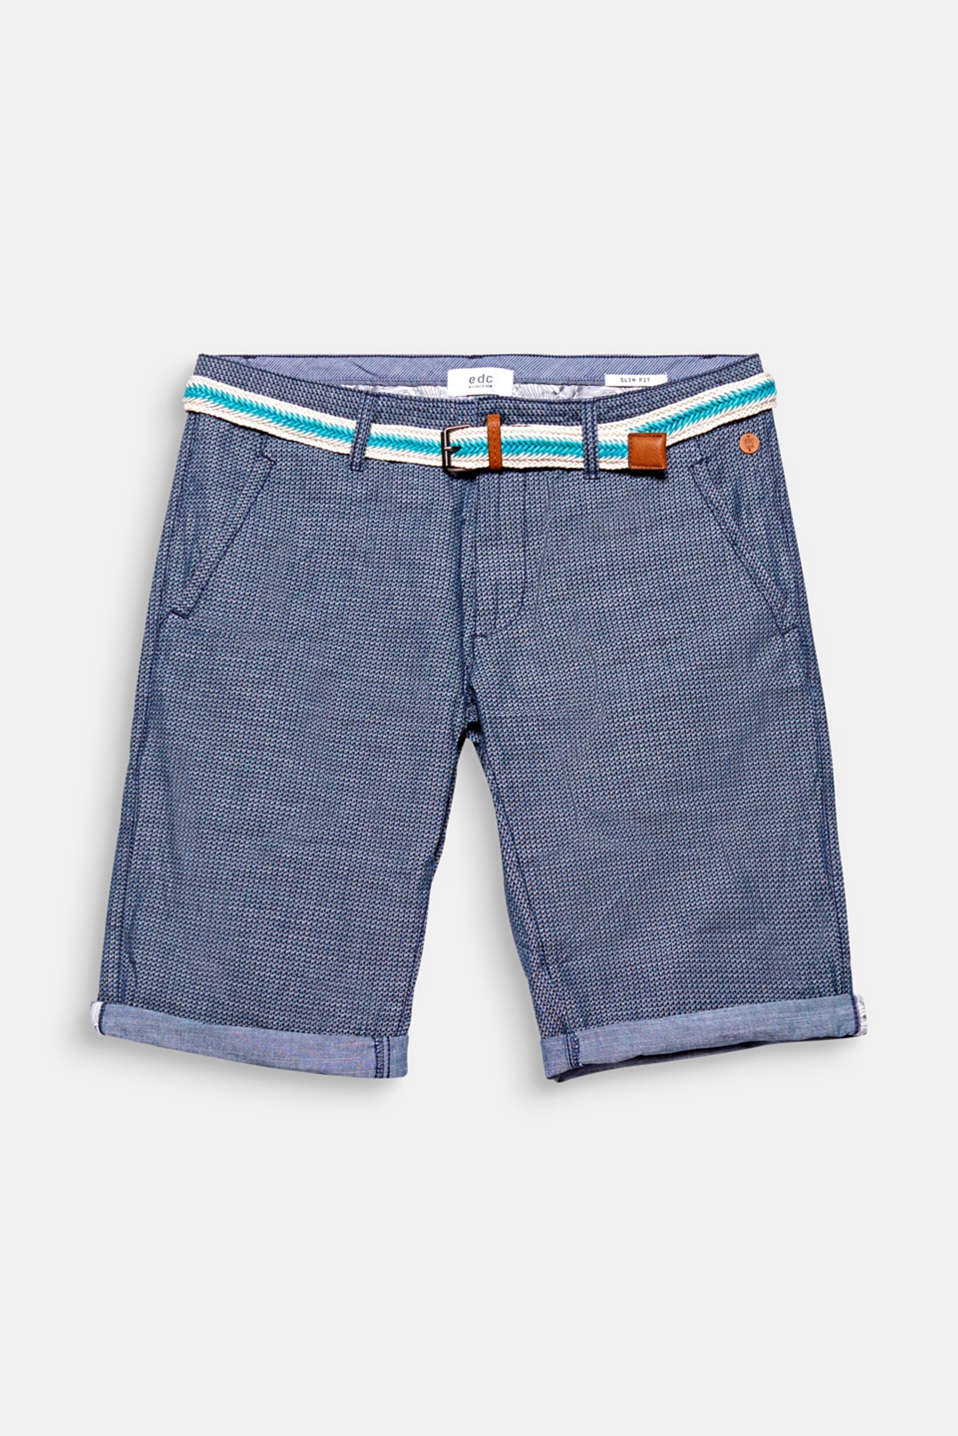 A geometric minimalist print gives these shorts a modern look.